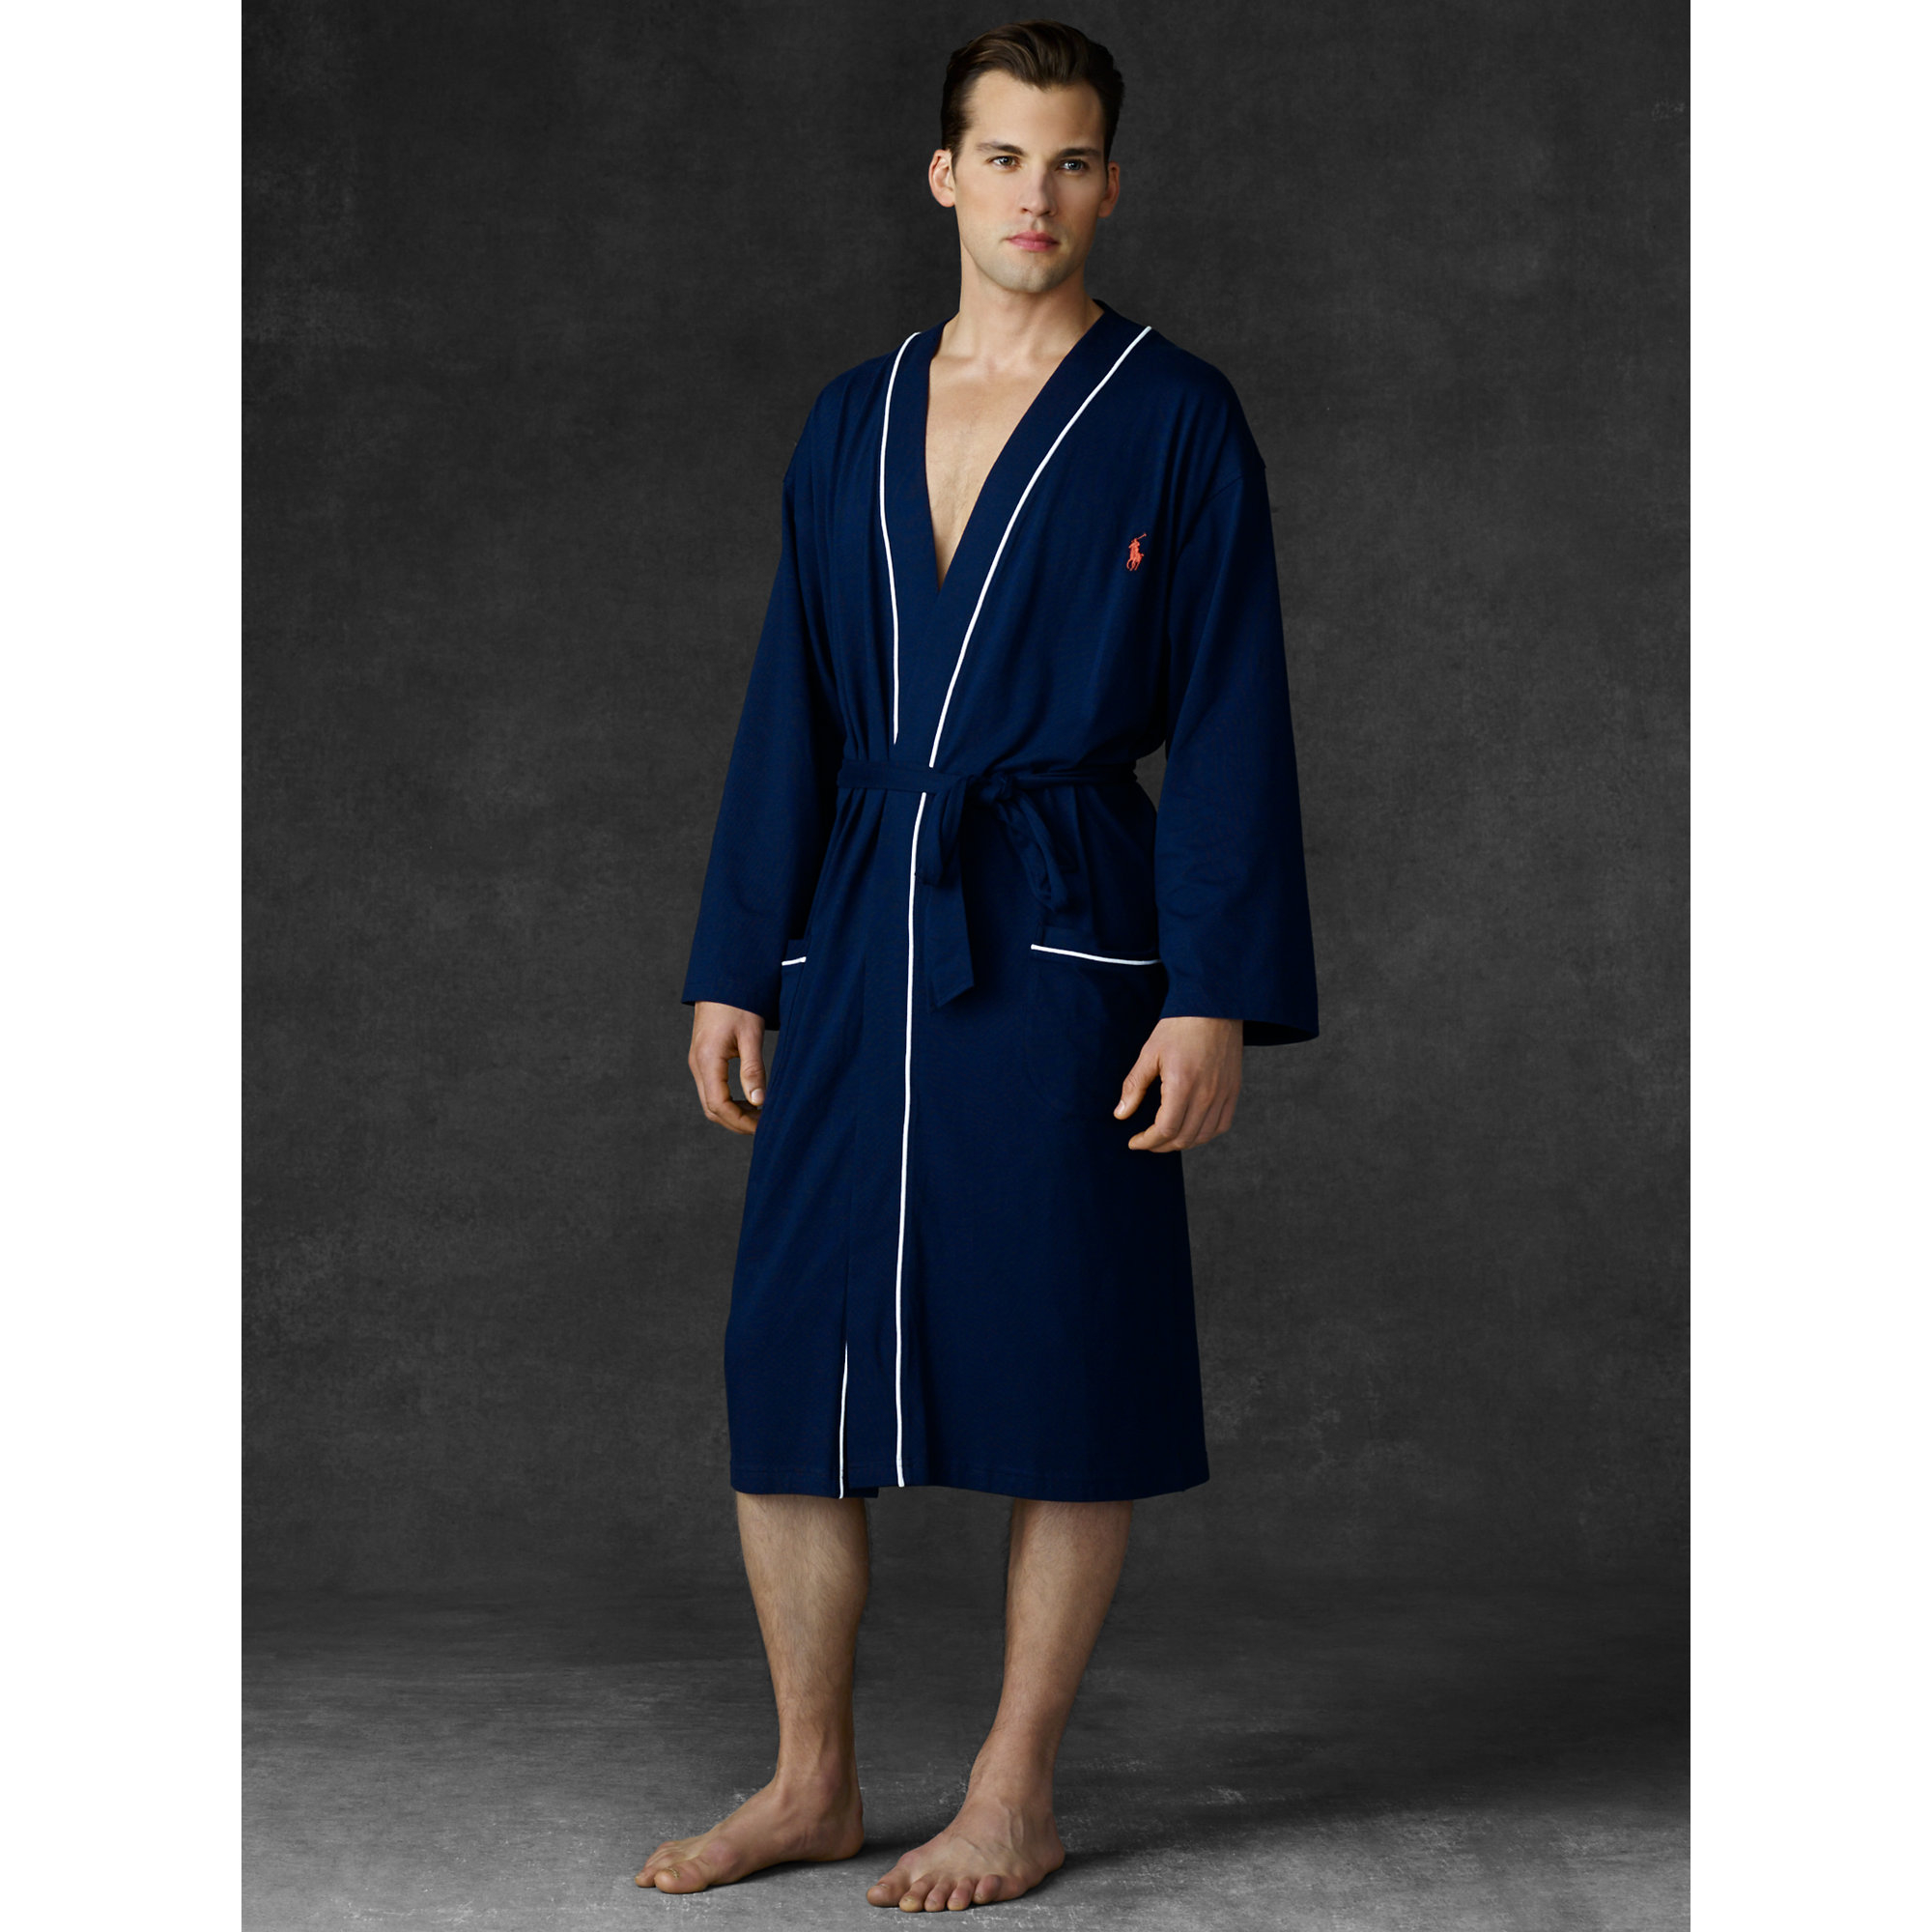 lyst polo ralph lauren kimono robe in blue for men. Black Bedroom Furniture Sets. Home Design Ideas